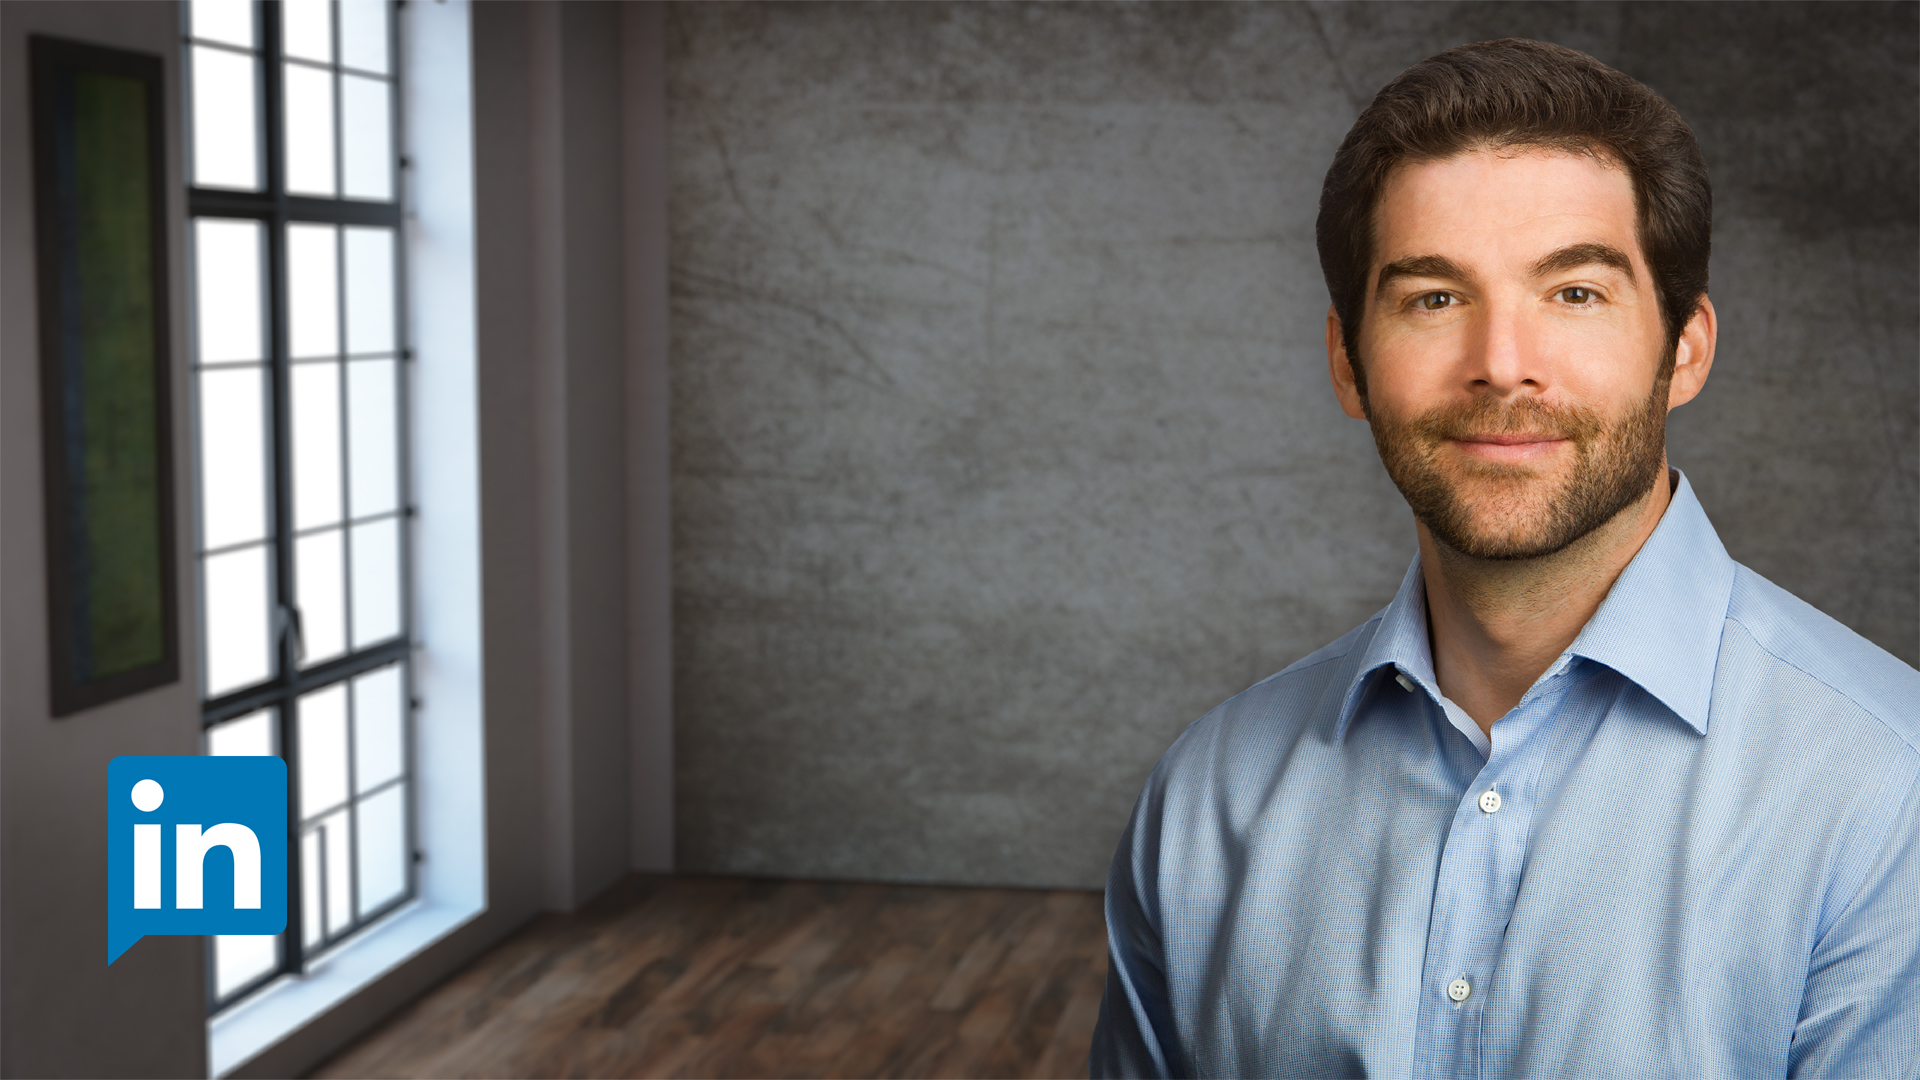 Jeff Weiner on Managing Compassionately LinkedIn Learning 1920x1080